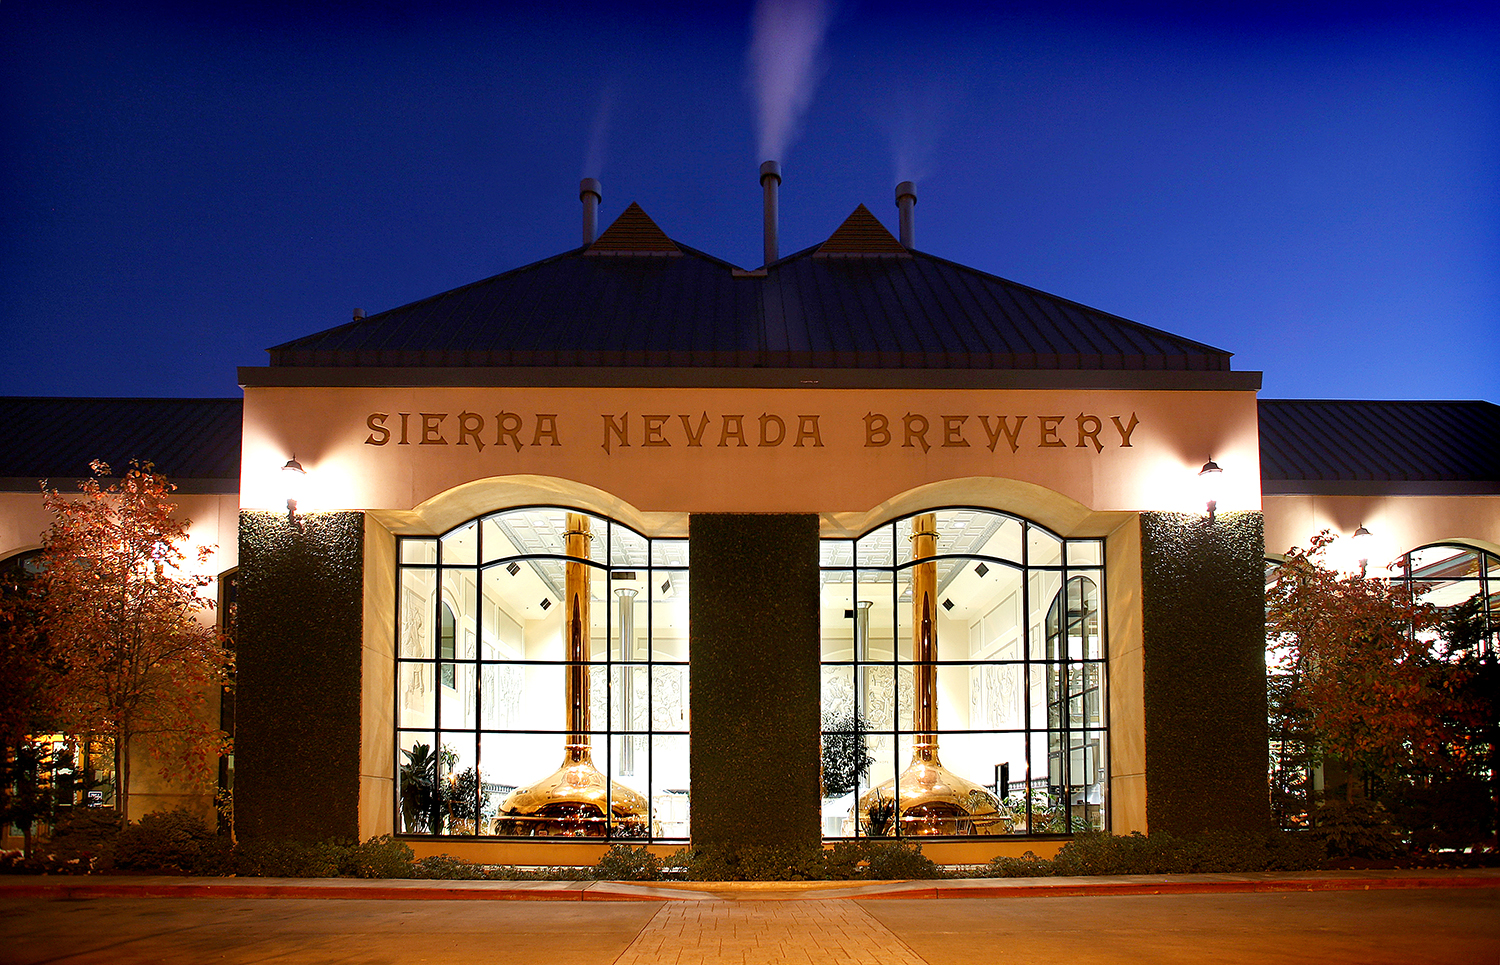 Sierra Nevada Brewery is one of the world's largest craft brewers